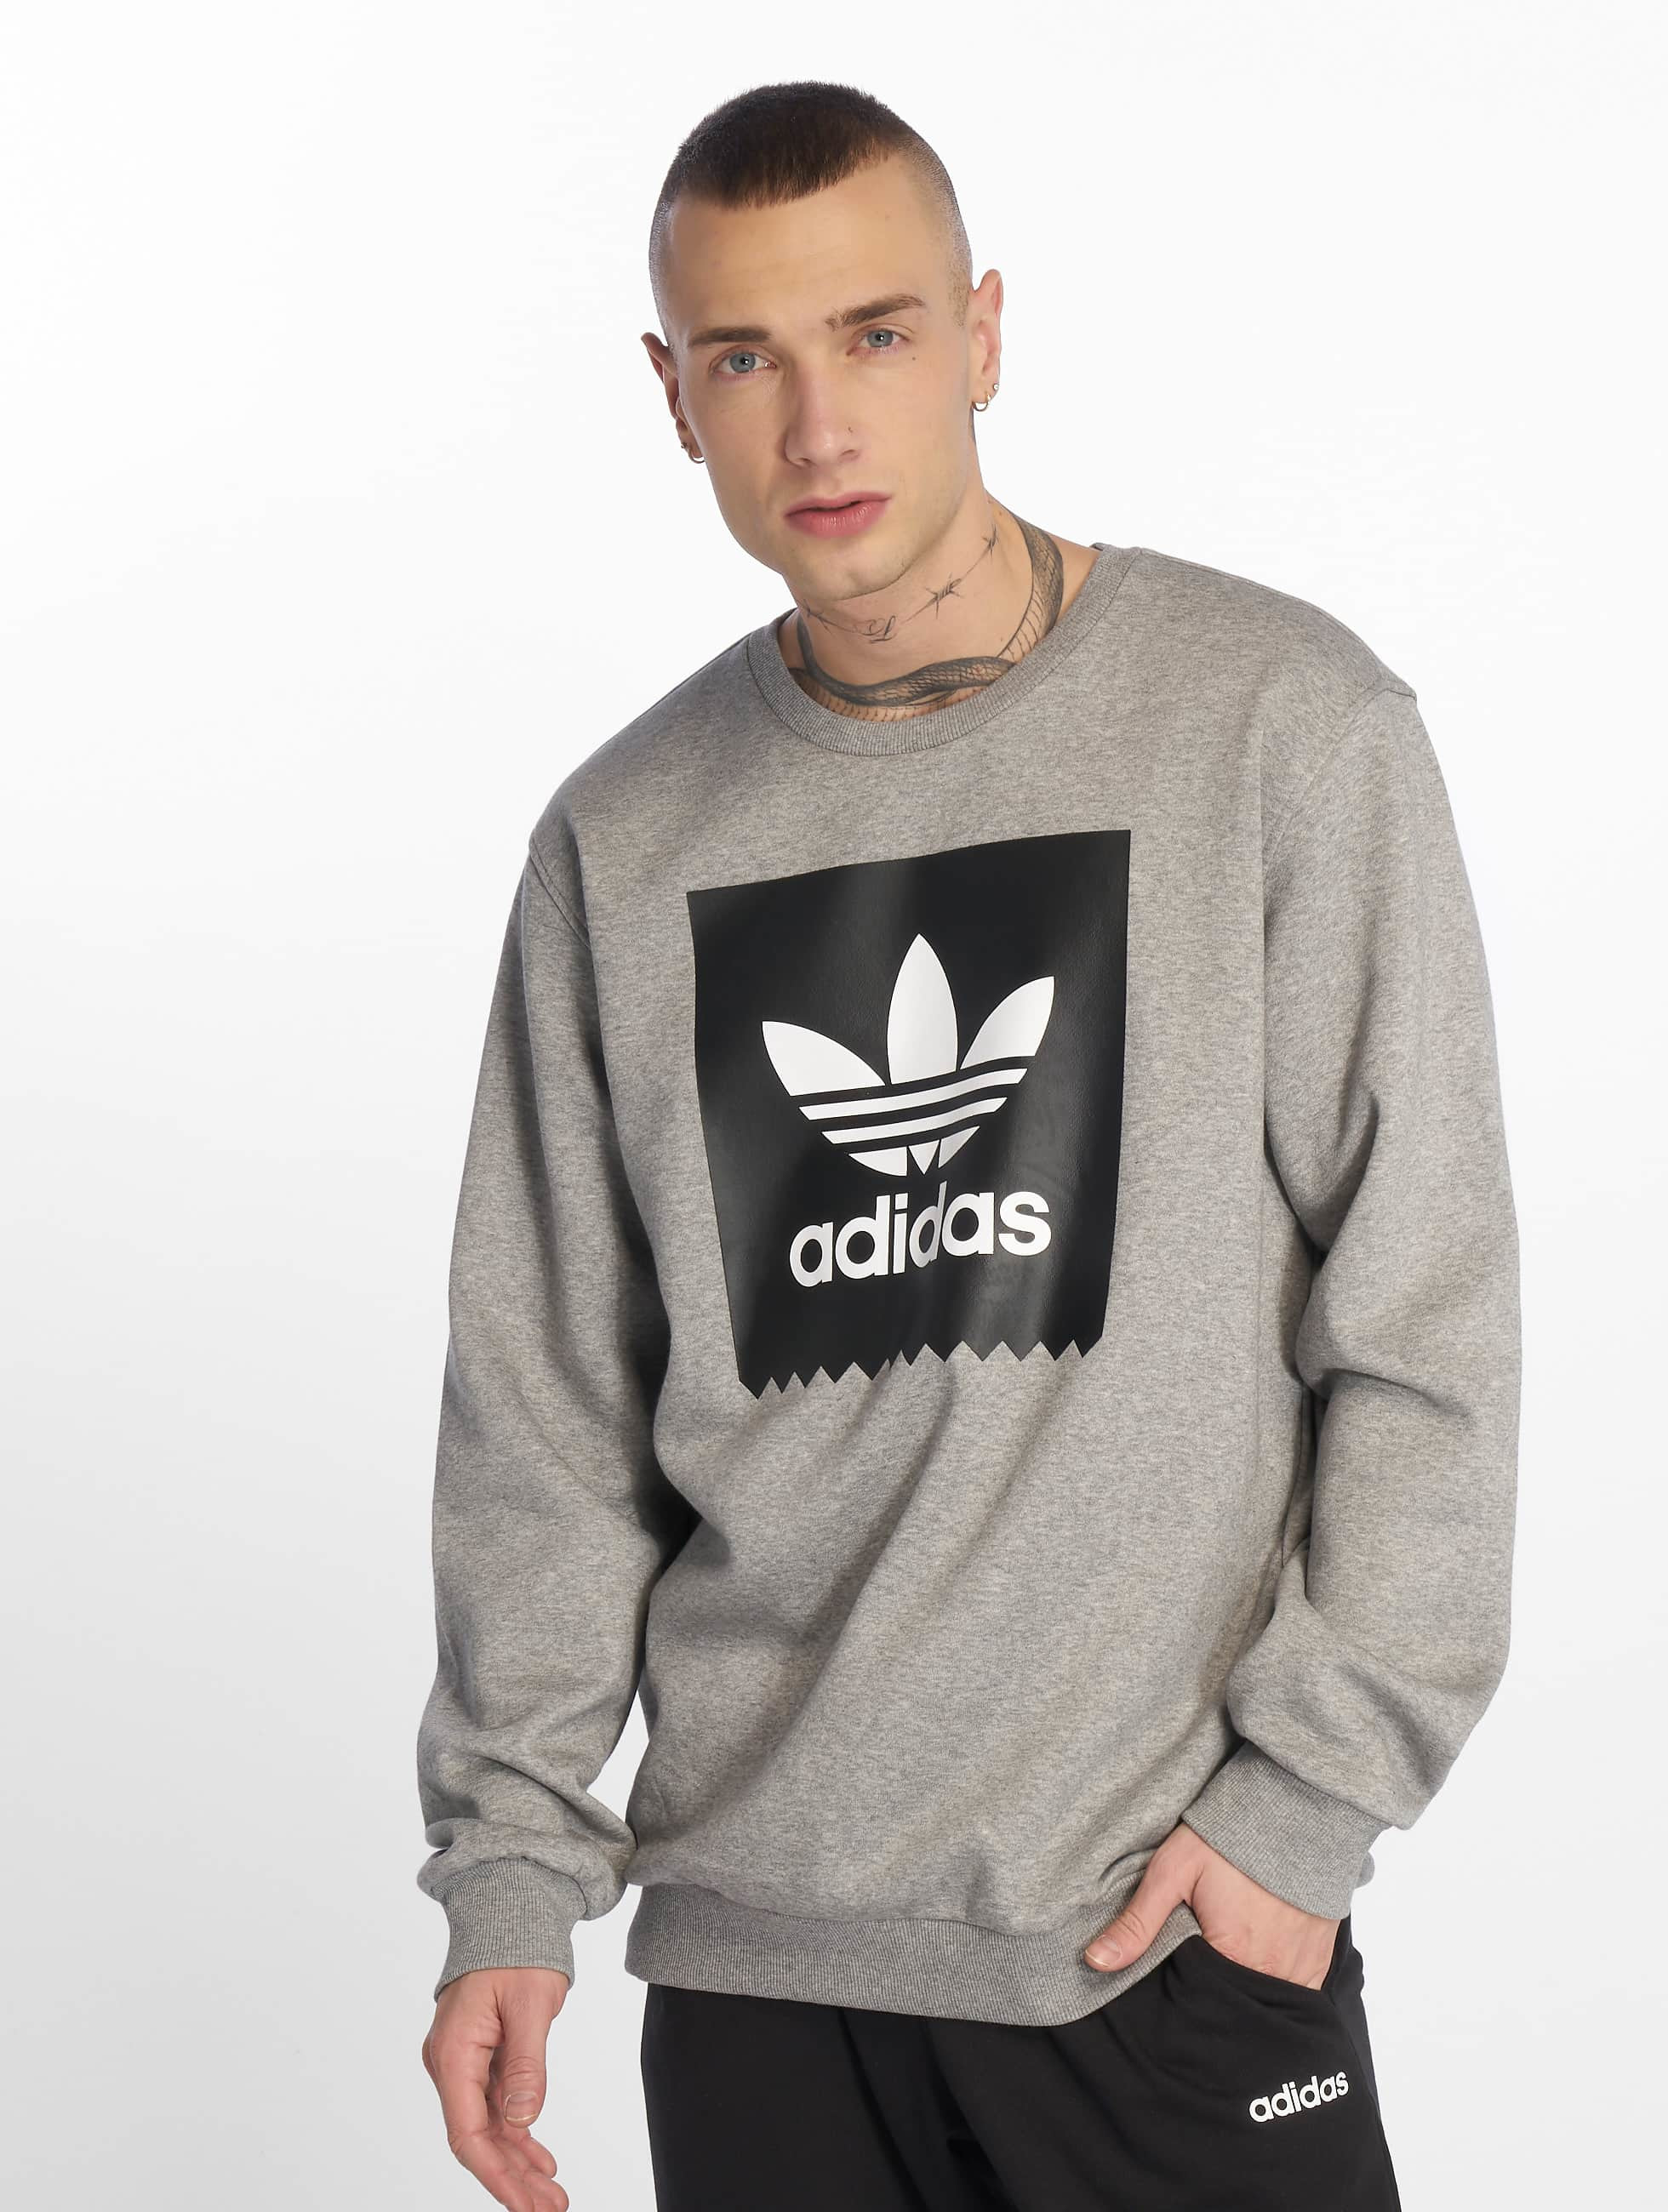 Bb Originals Sweat 598654 Eawdaw Pull Amp; Homme Adidas Gris TK5Jul3cF1